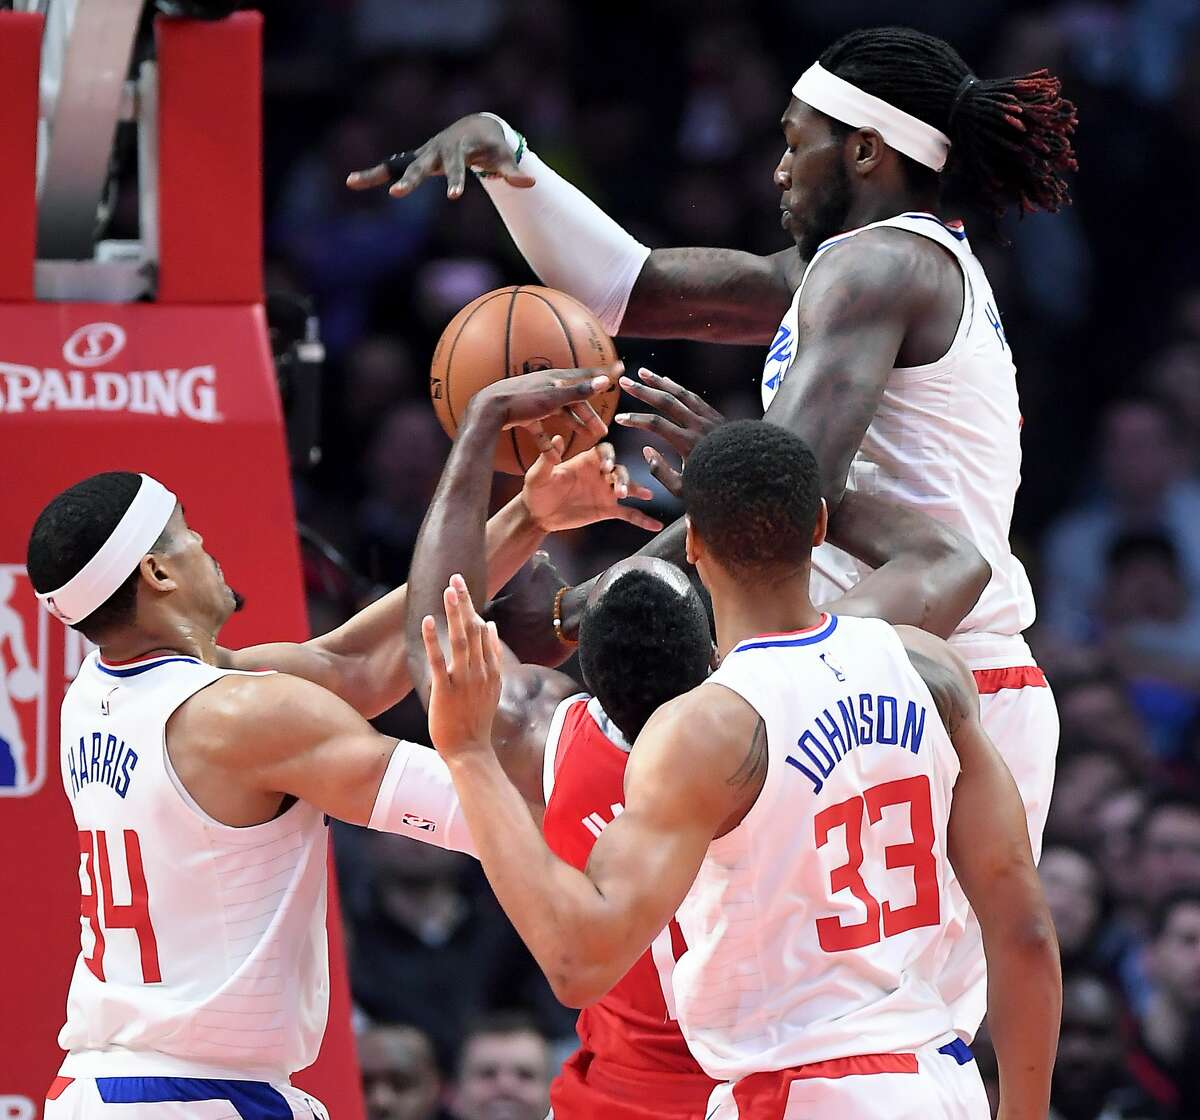 The Houston Rockets' James Harden is fouled by the Los Angeles Clippers' Wesley Johnson (33) as Tobias Harris, left, and Montezi Harrell help on defense in the first quarter at the Staples Center in Los Angeles on Wednesday, Feb. 28, 2018. (Wally Skalij/Los Angeles Times/TNS)